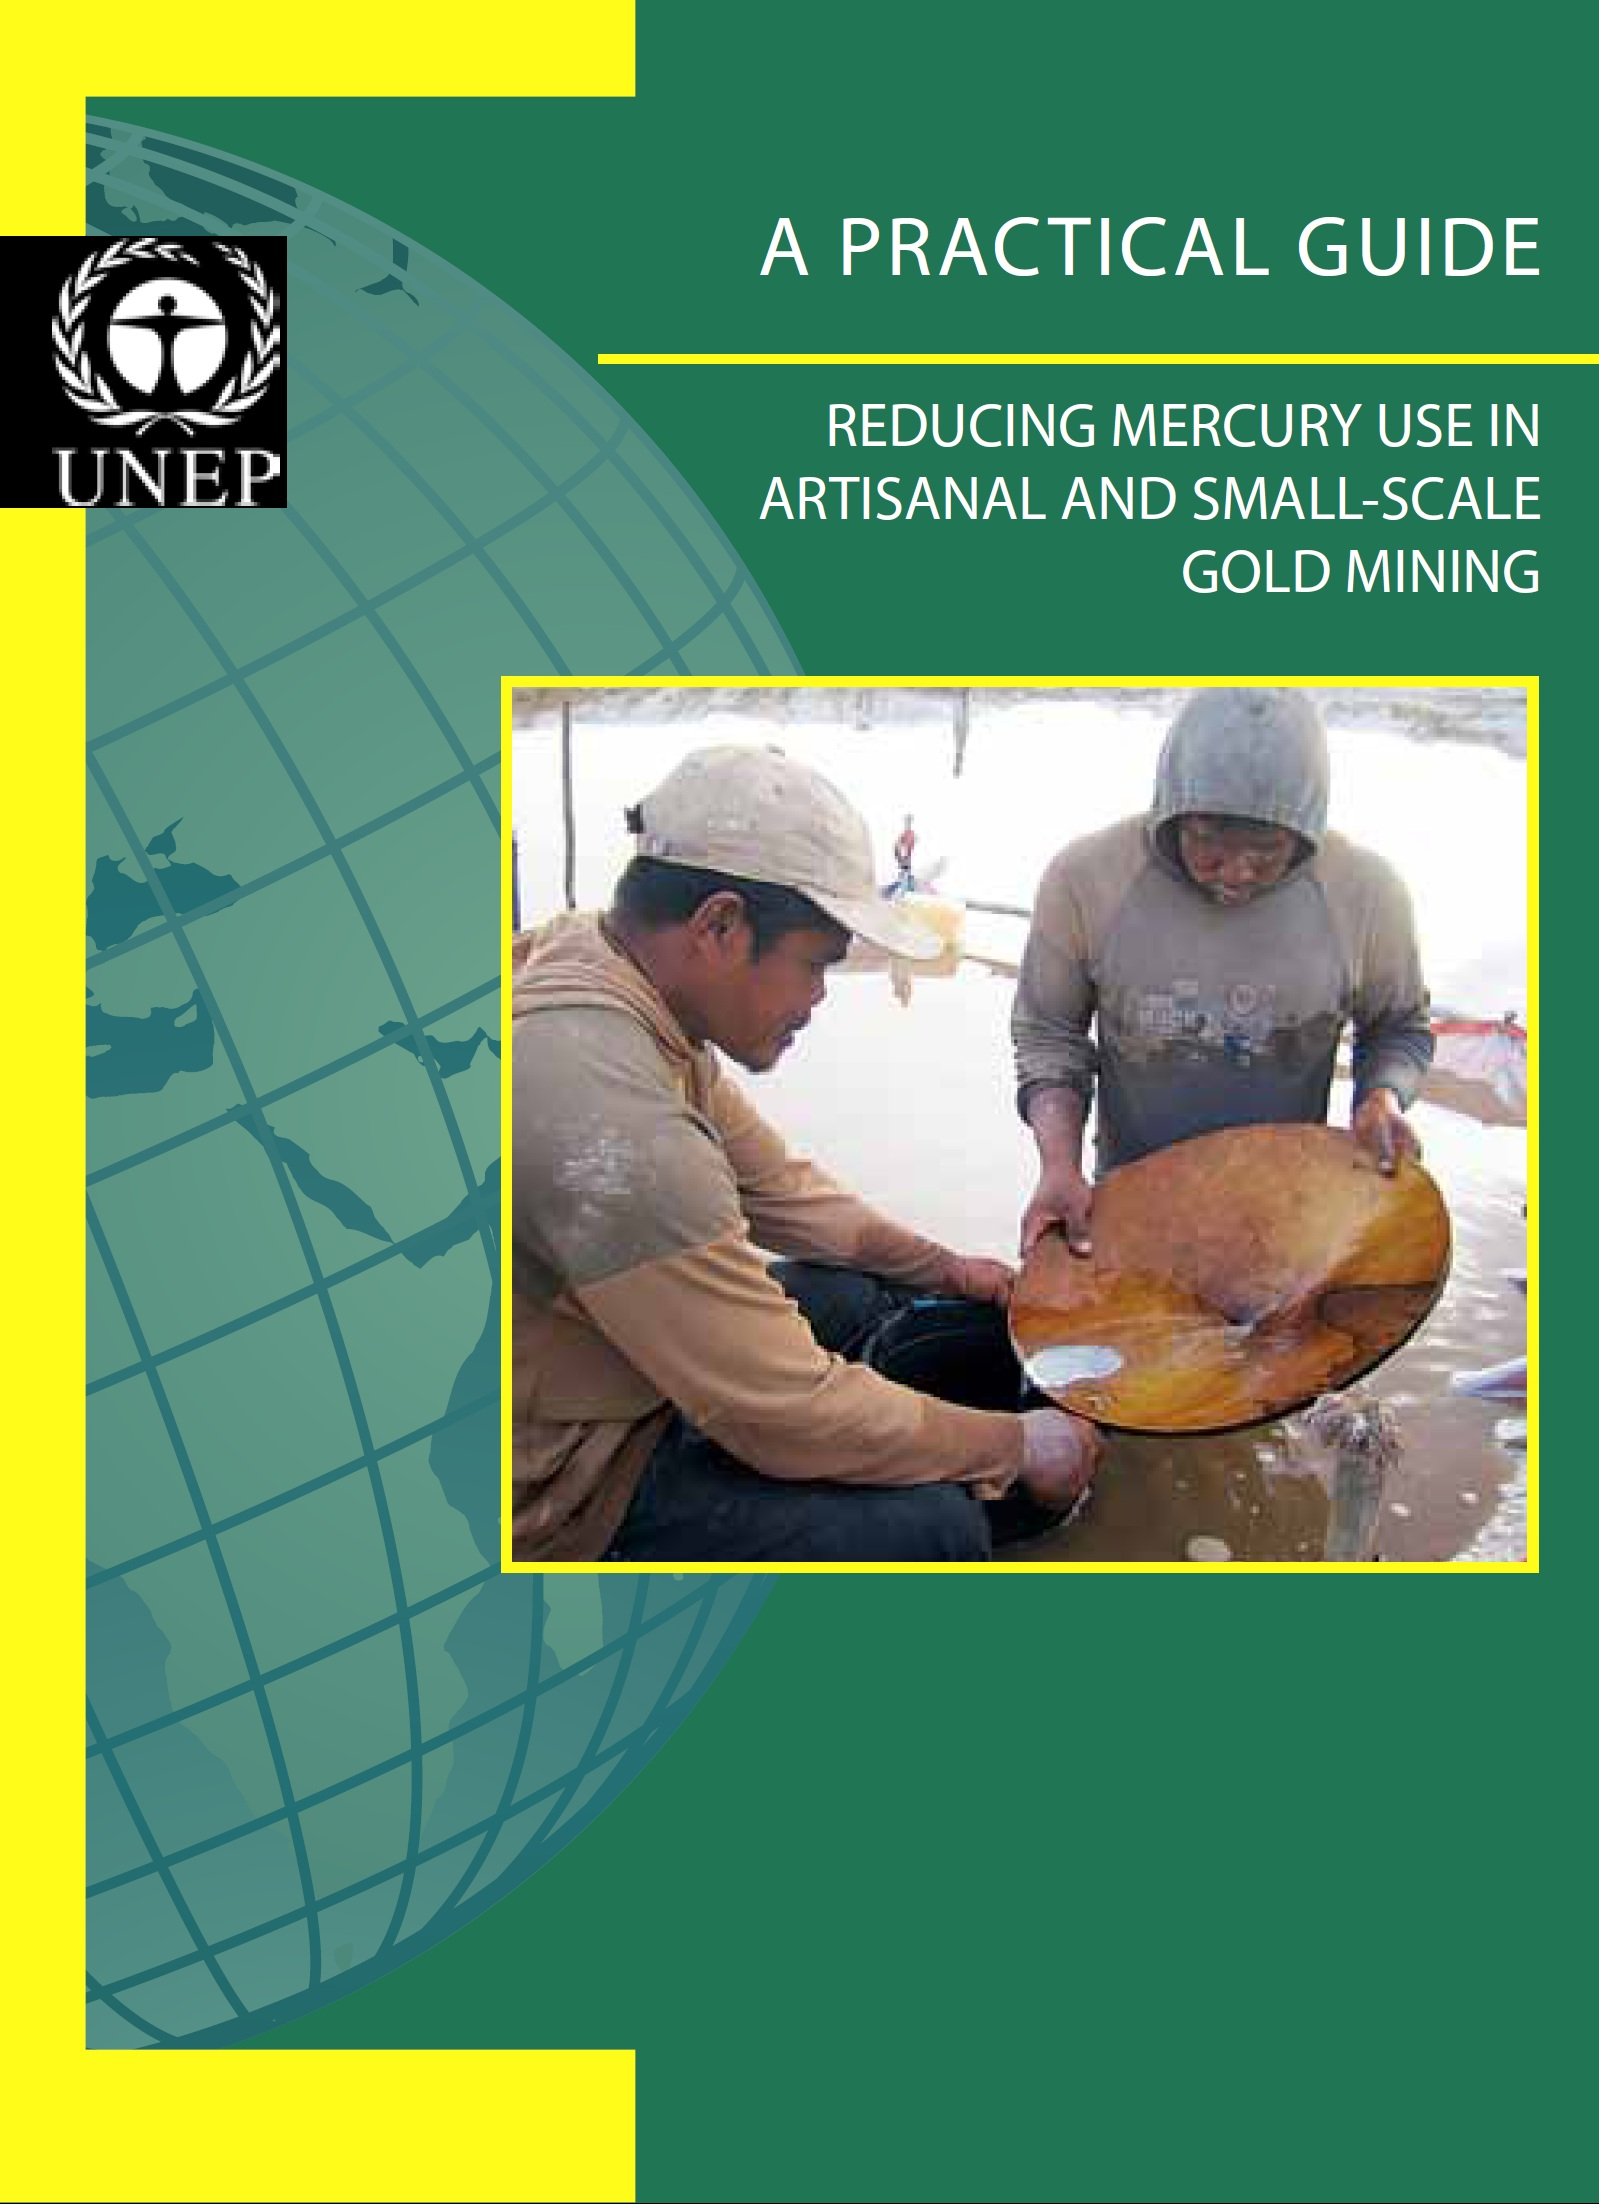 reducing_mercury_use_in_artisanal_and_small_scale_mining